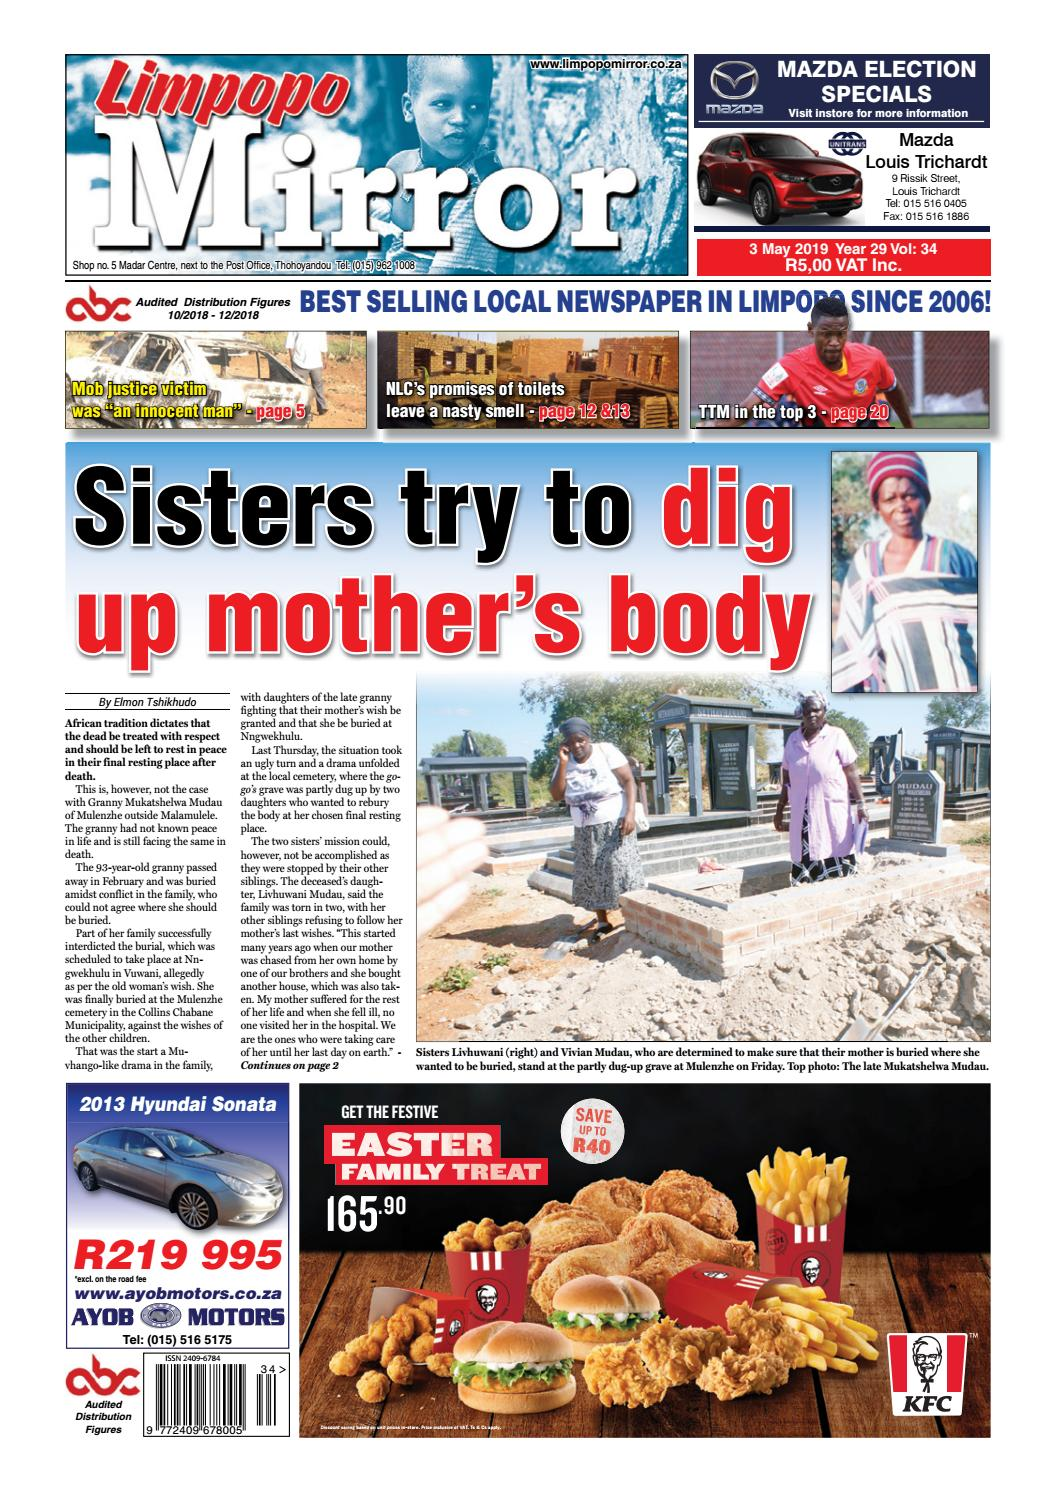 Limpopo Mirror 3 May 2019 by Zoutnet - issuu